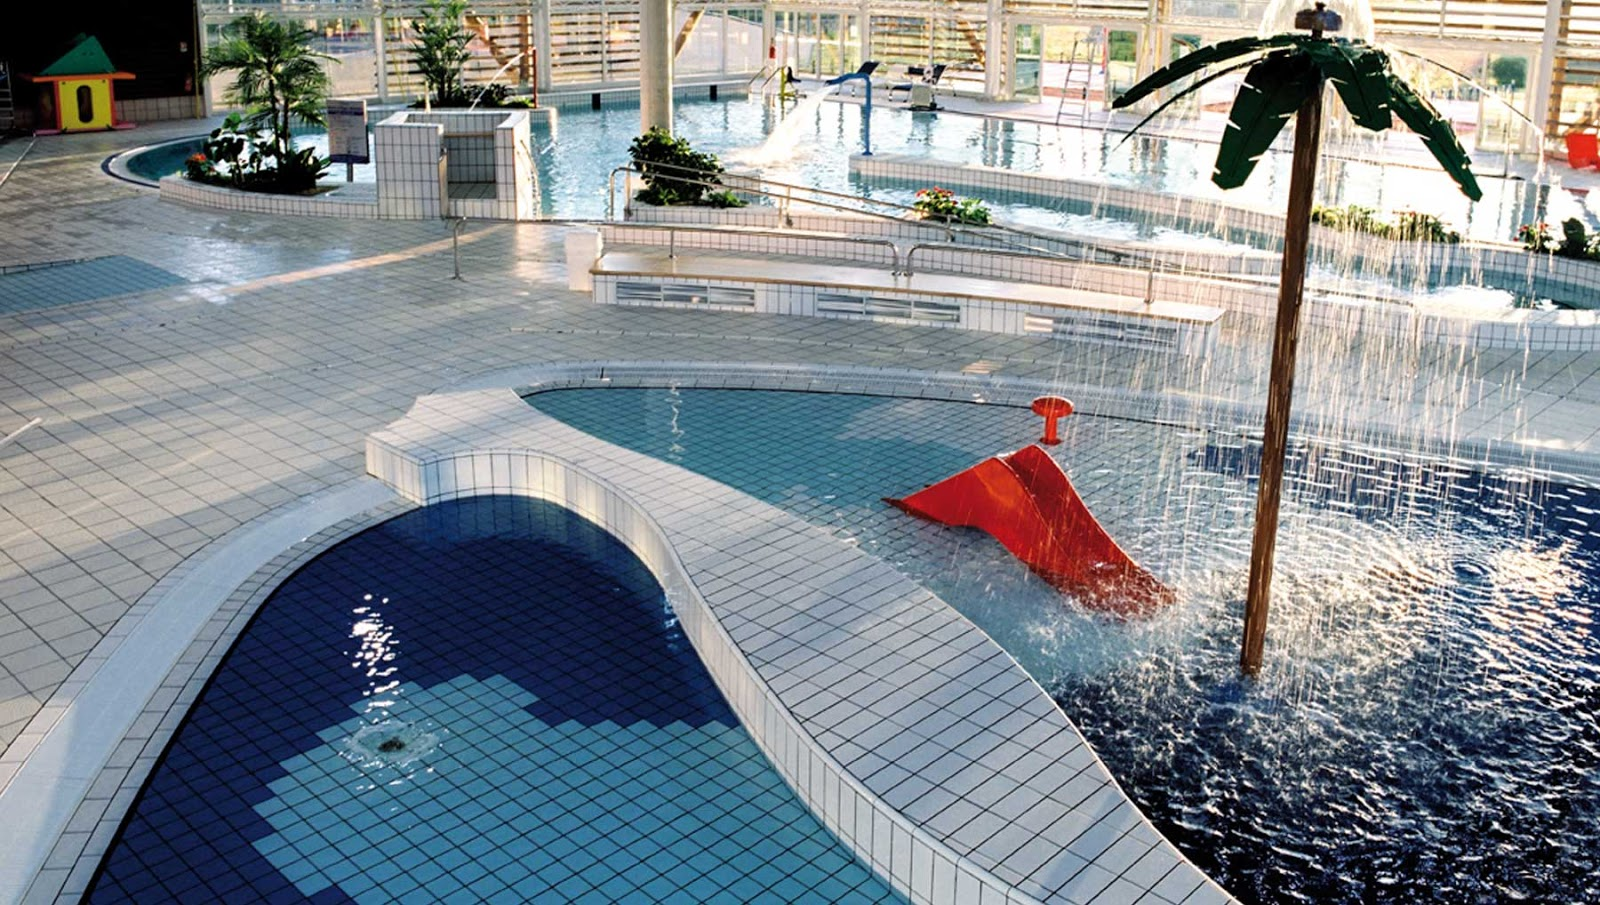 Piscine la riche carr d 39 c t de tours tout sur la for Piscine de chambray les tours